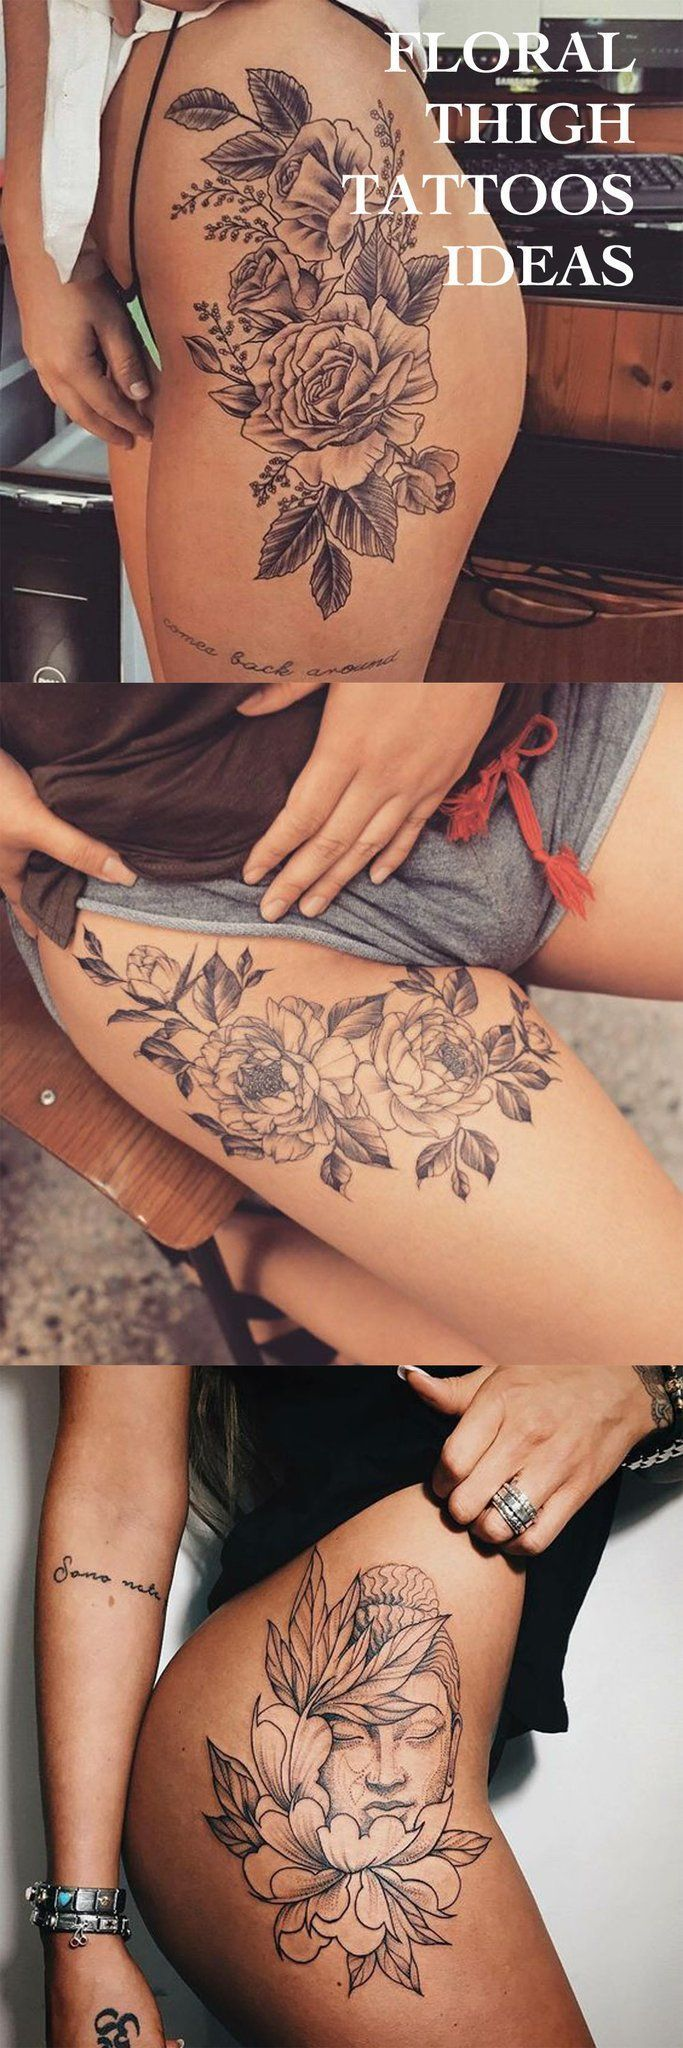 Floral Thigh Tattoo Ideas at MyBodiArt.com - Flower Buddha Black and White Tat #ad